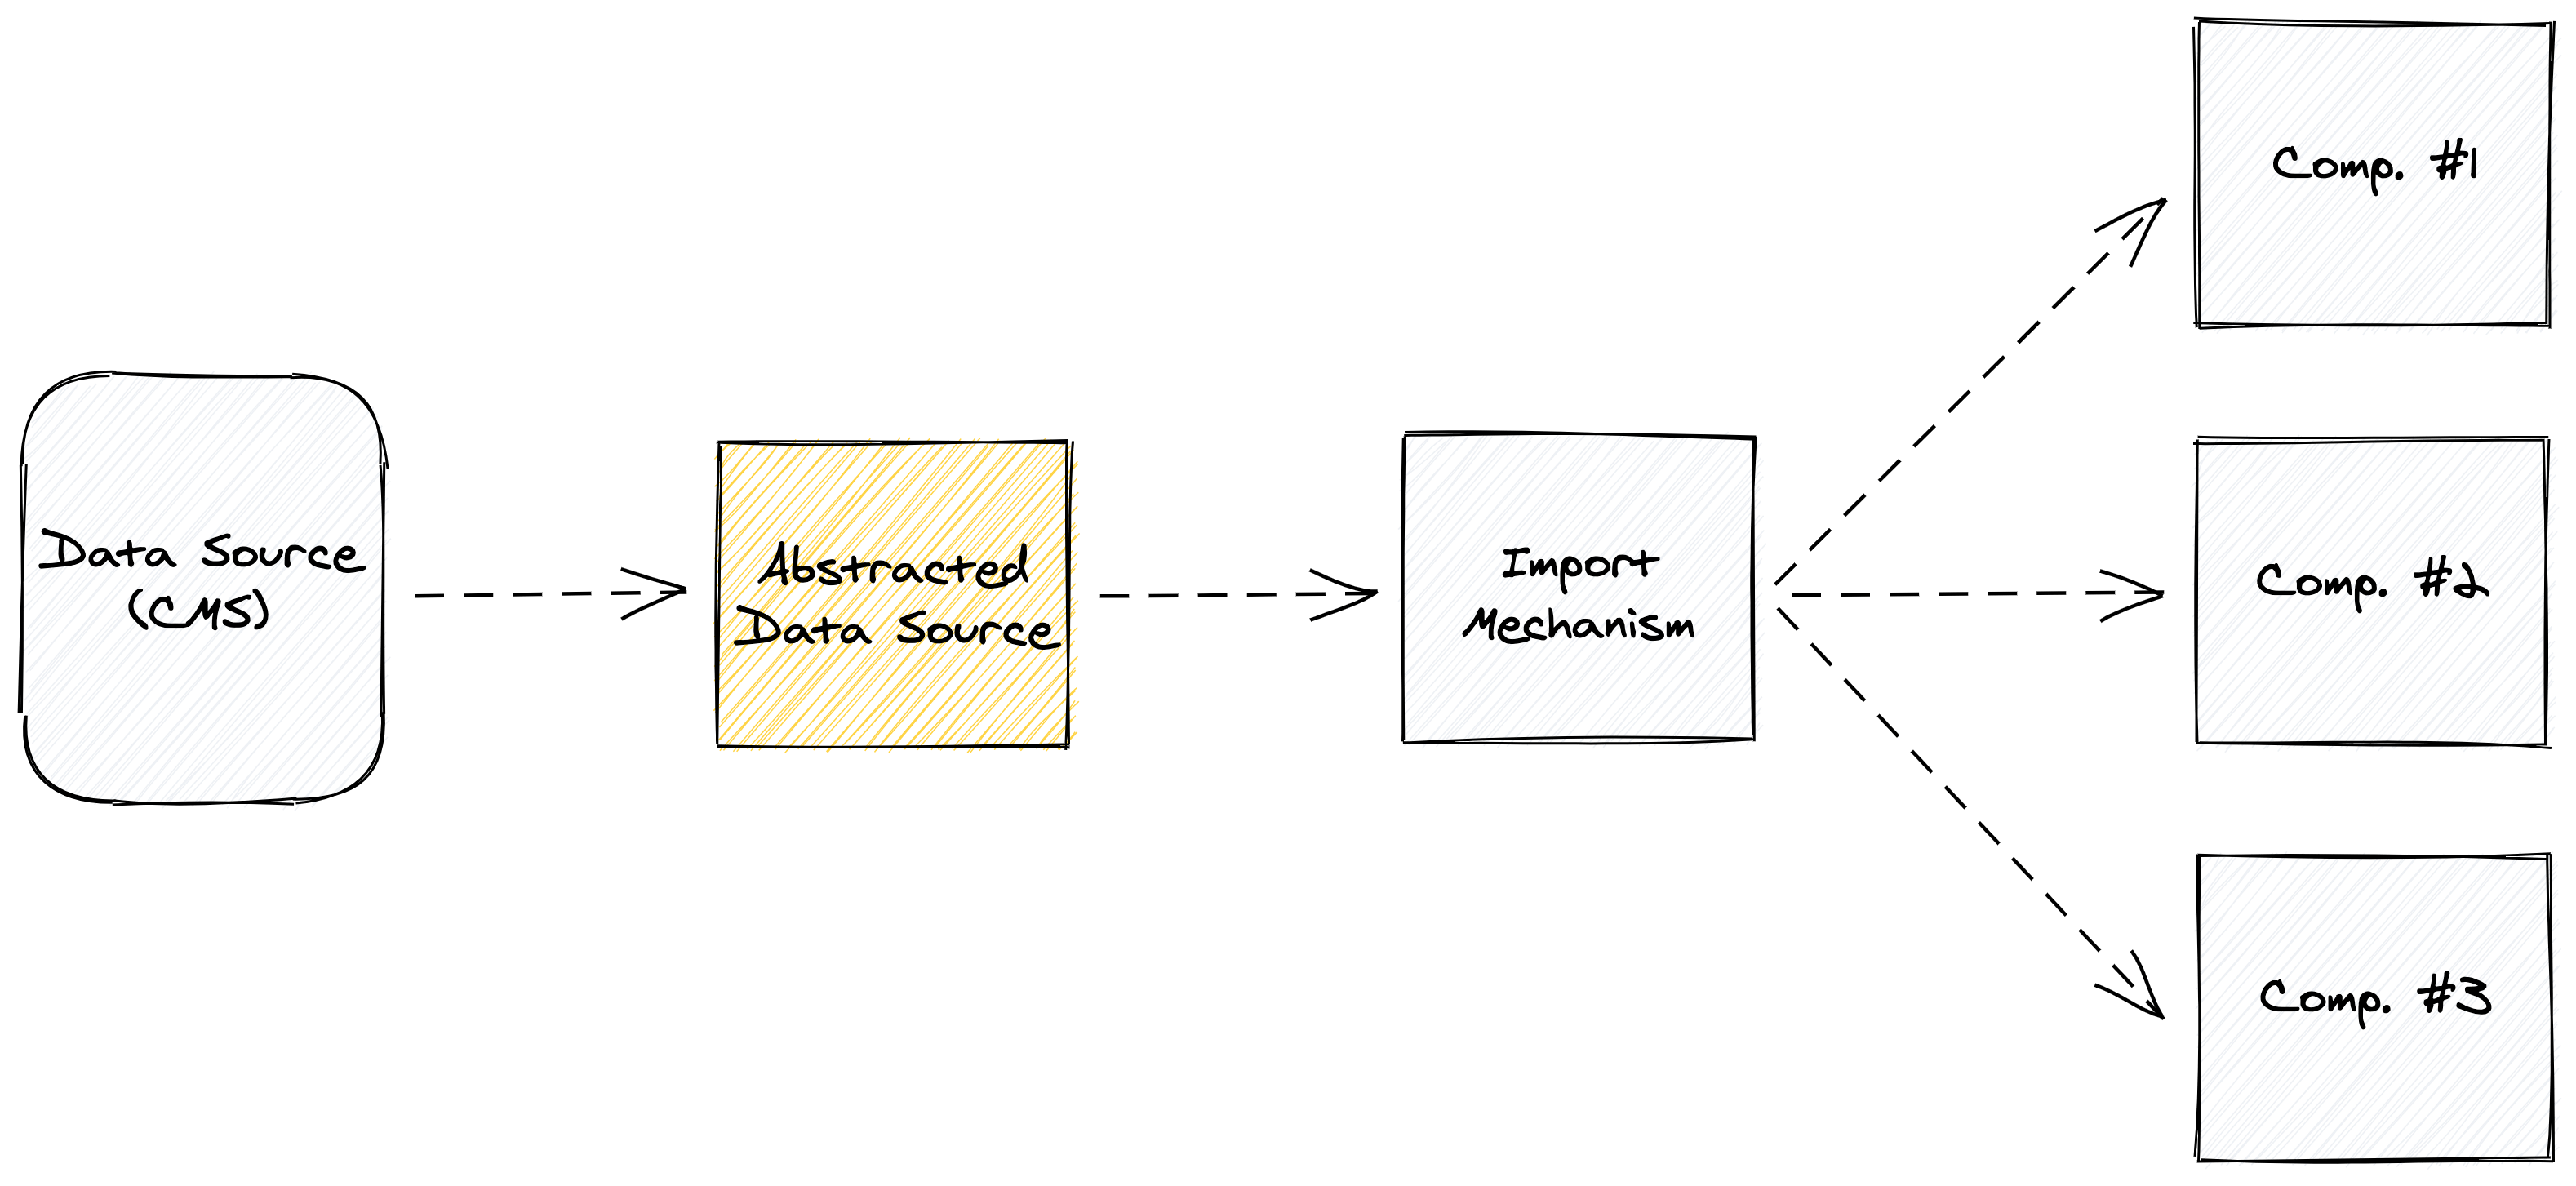 Another illustration, this time where the yellow box is the abstracted data source, which points to a white box labeled import mechanism, which then points to the same three white squares representing components that are outlined in the previous illustration.